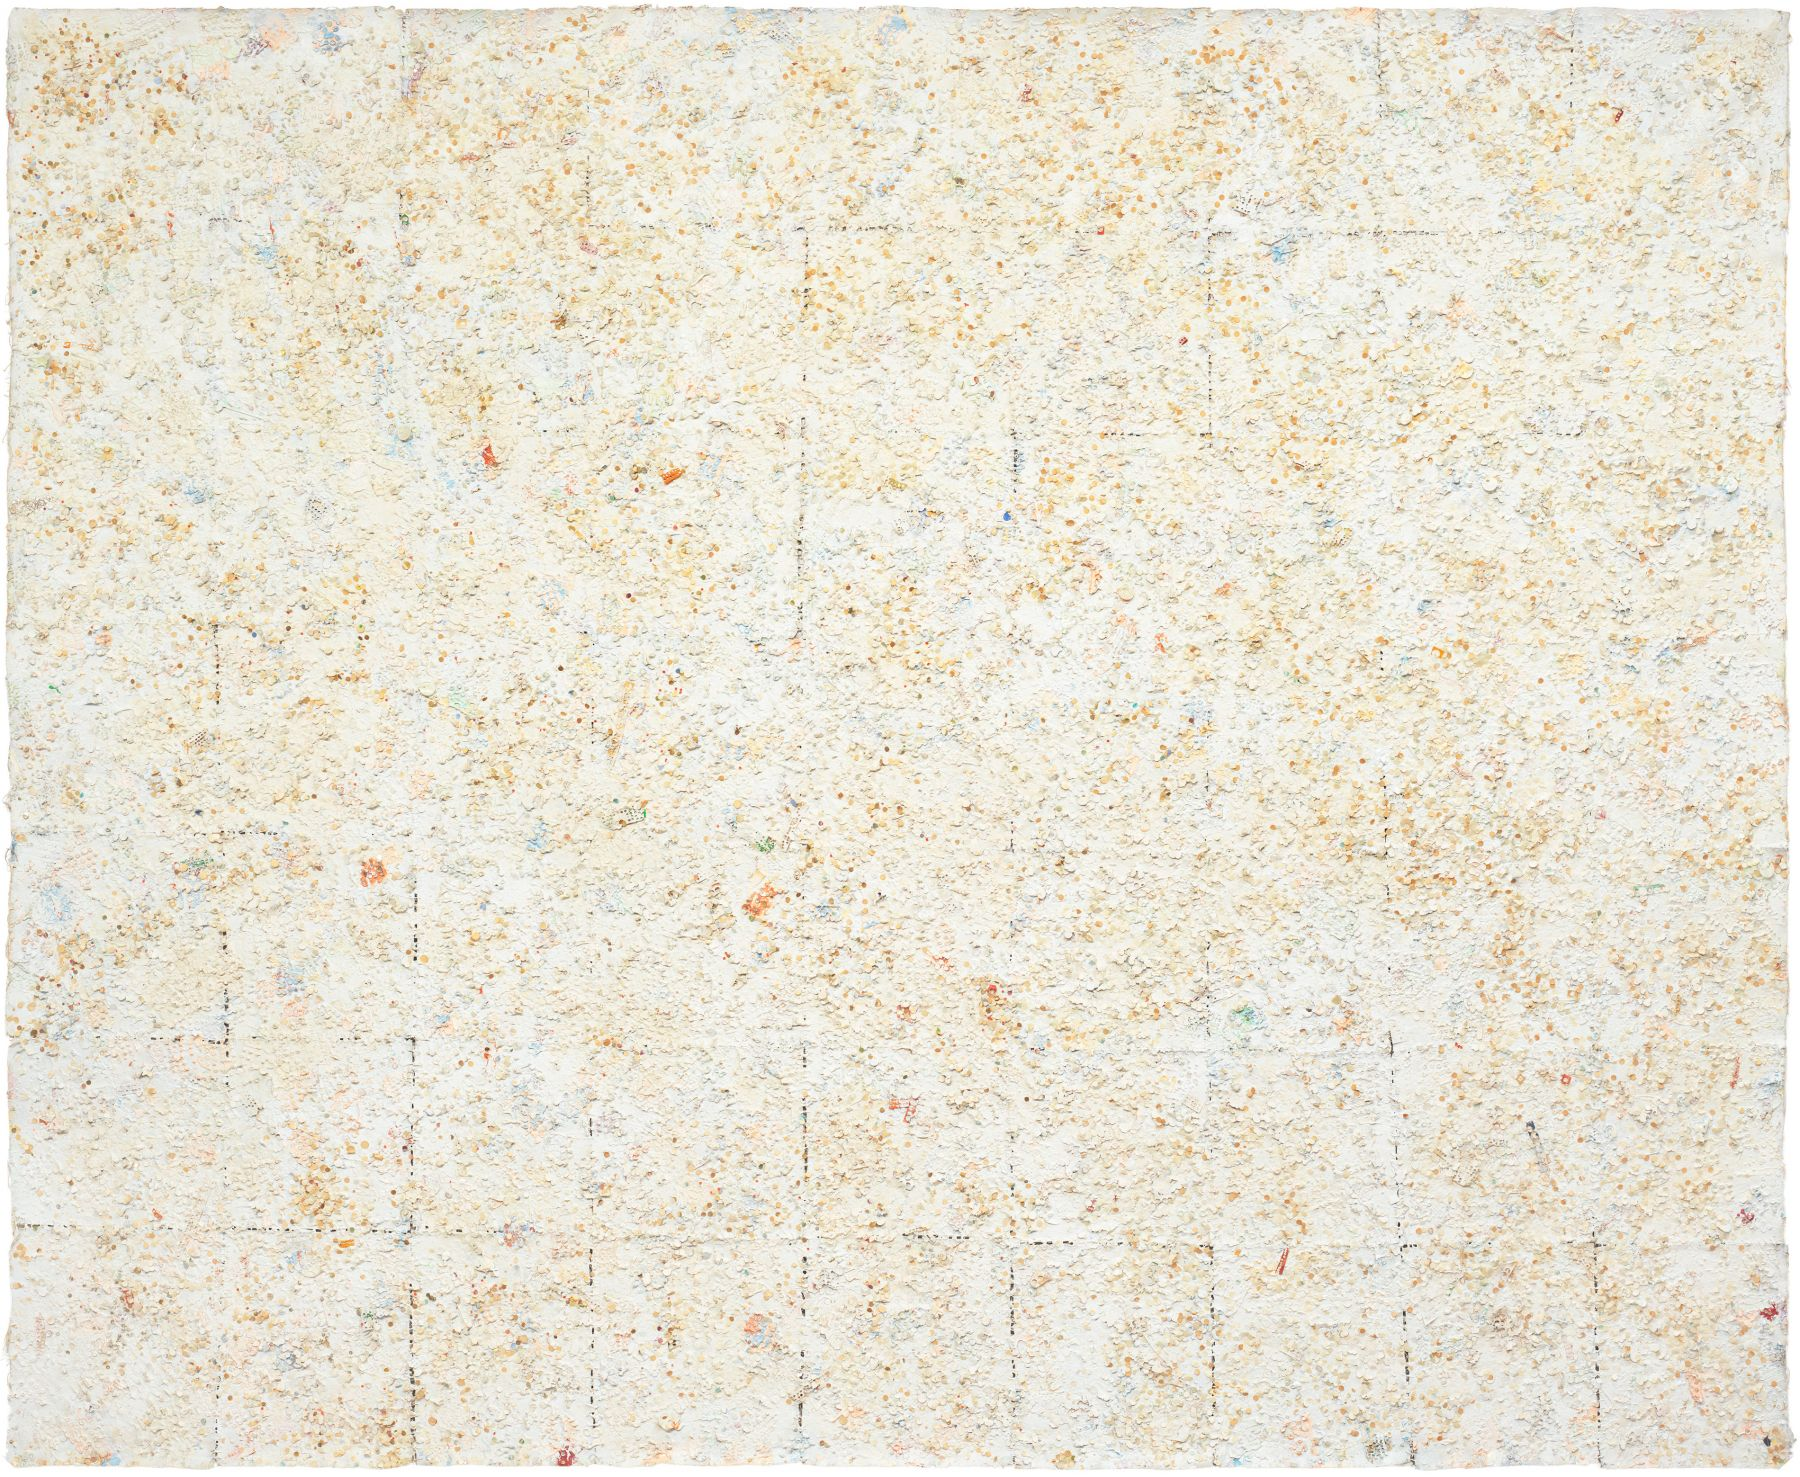 Howardena Pindell, Untitled, 1977